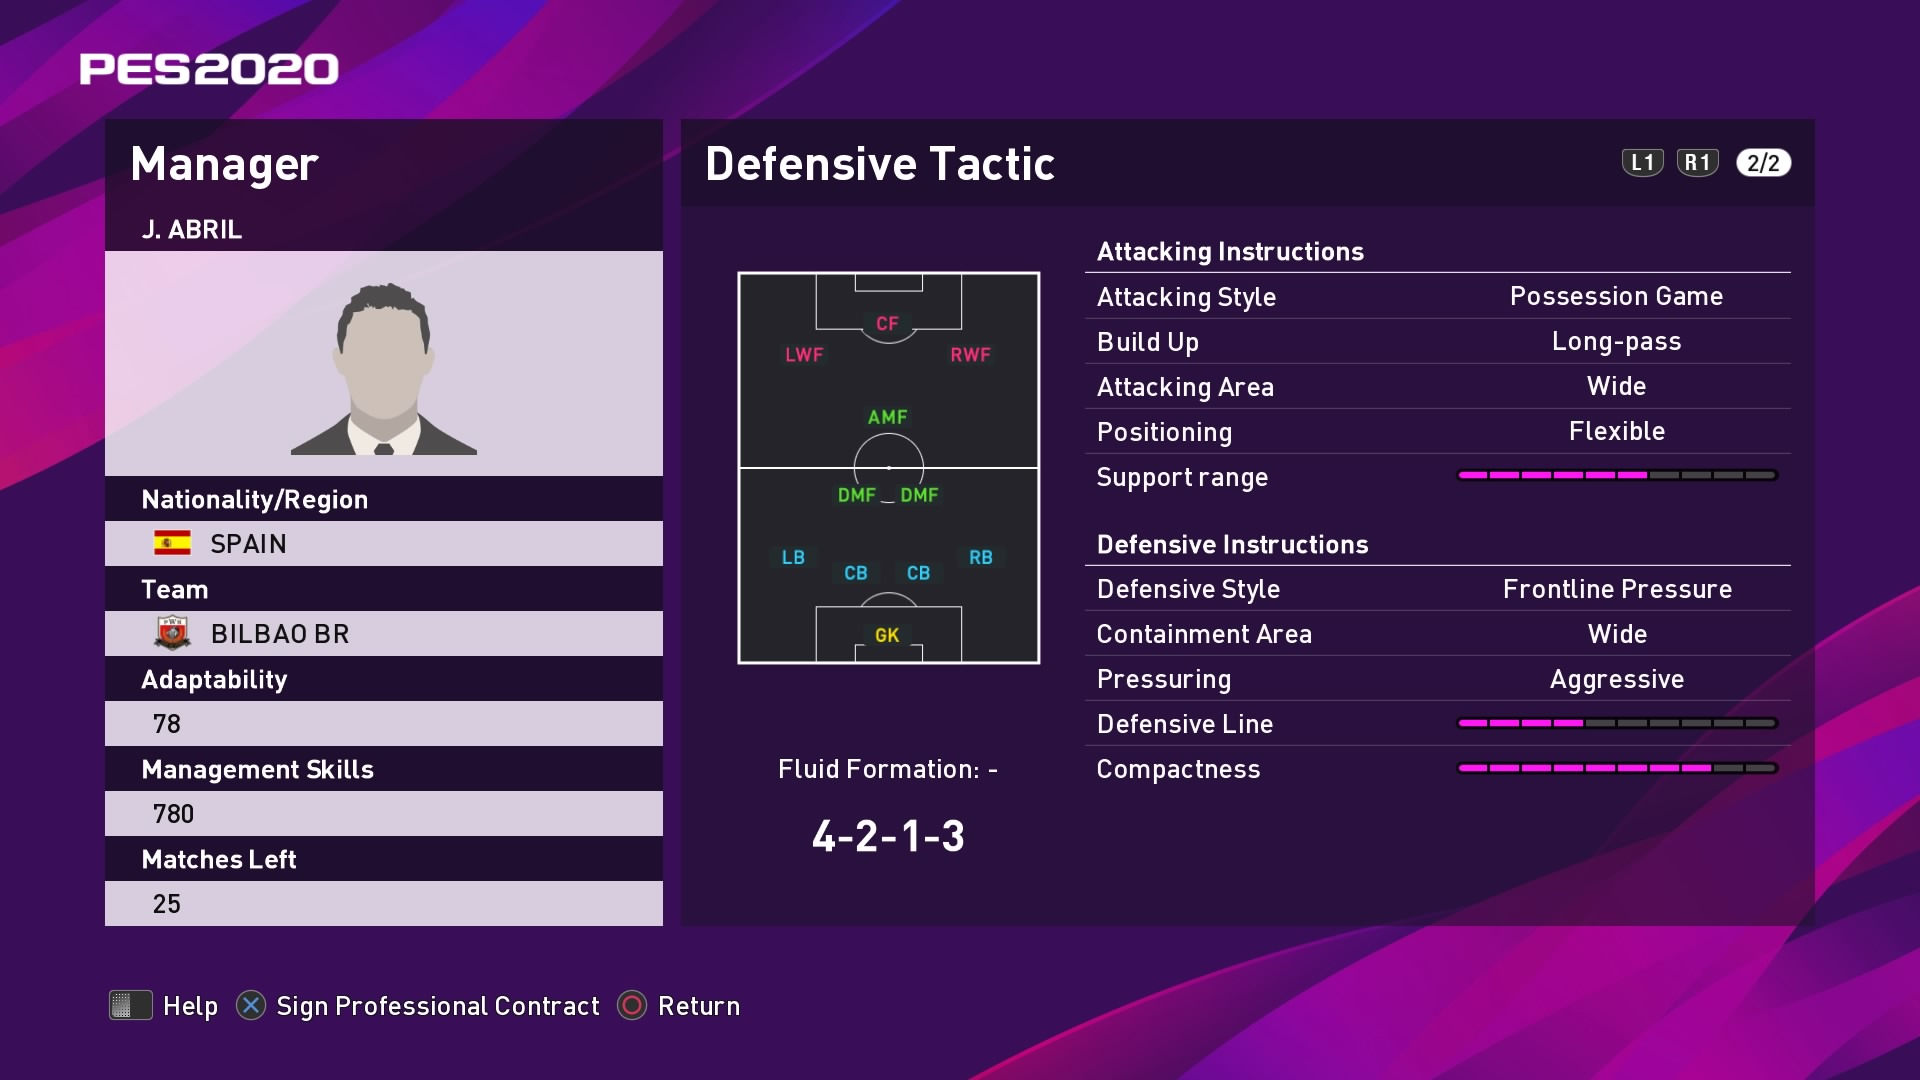 J. Abril (2) (Gaizka Garitano) Defensive Tactic in PES 2020 myClub